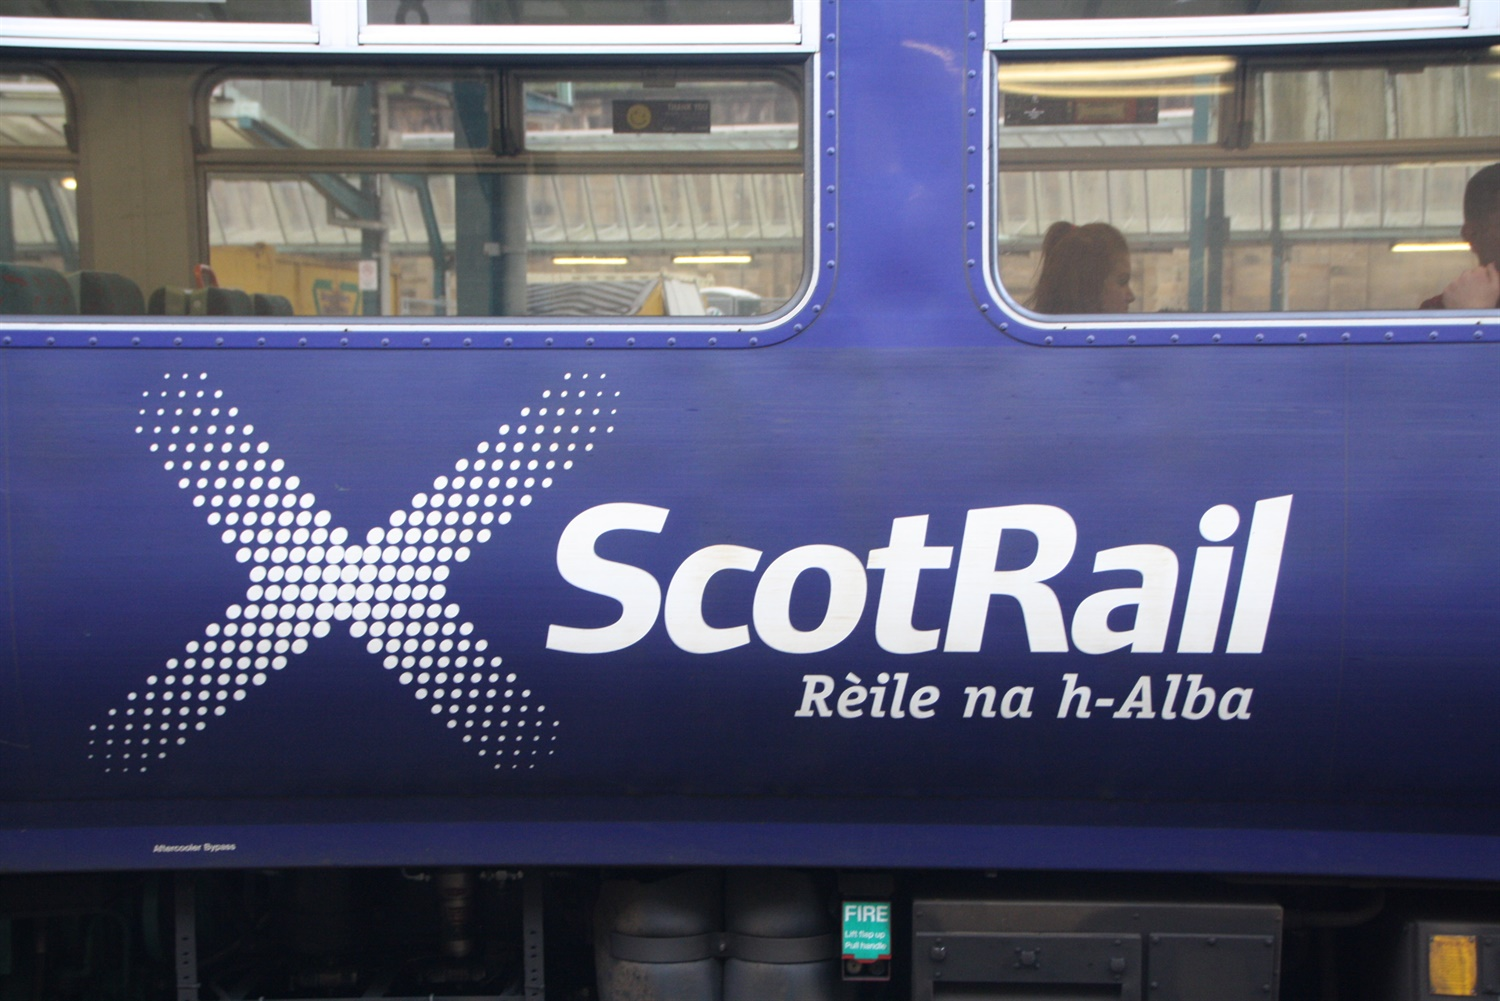 ScotRail fund to 'breathe new life' into derelict railway stations